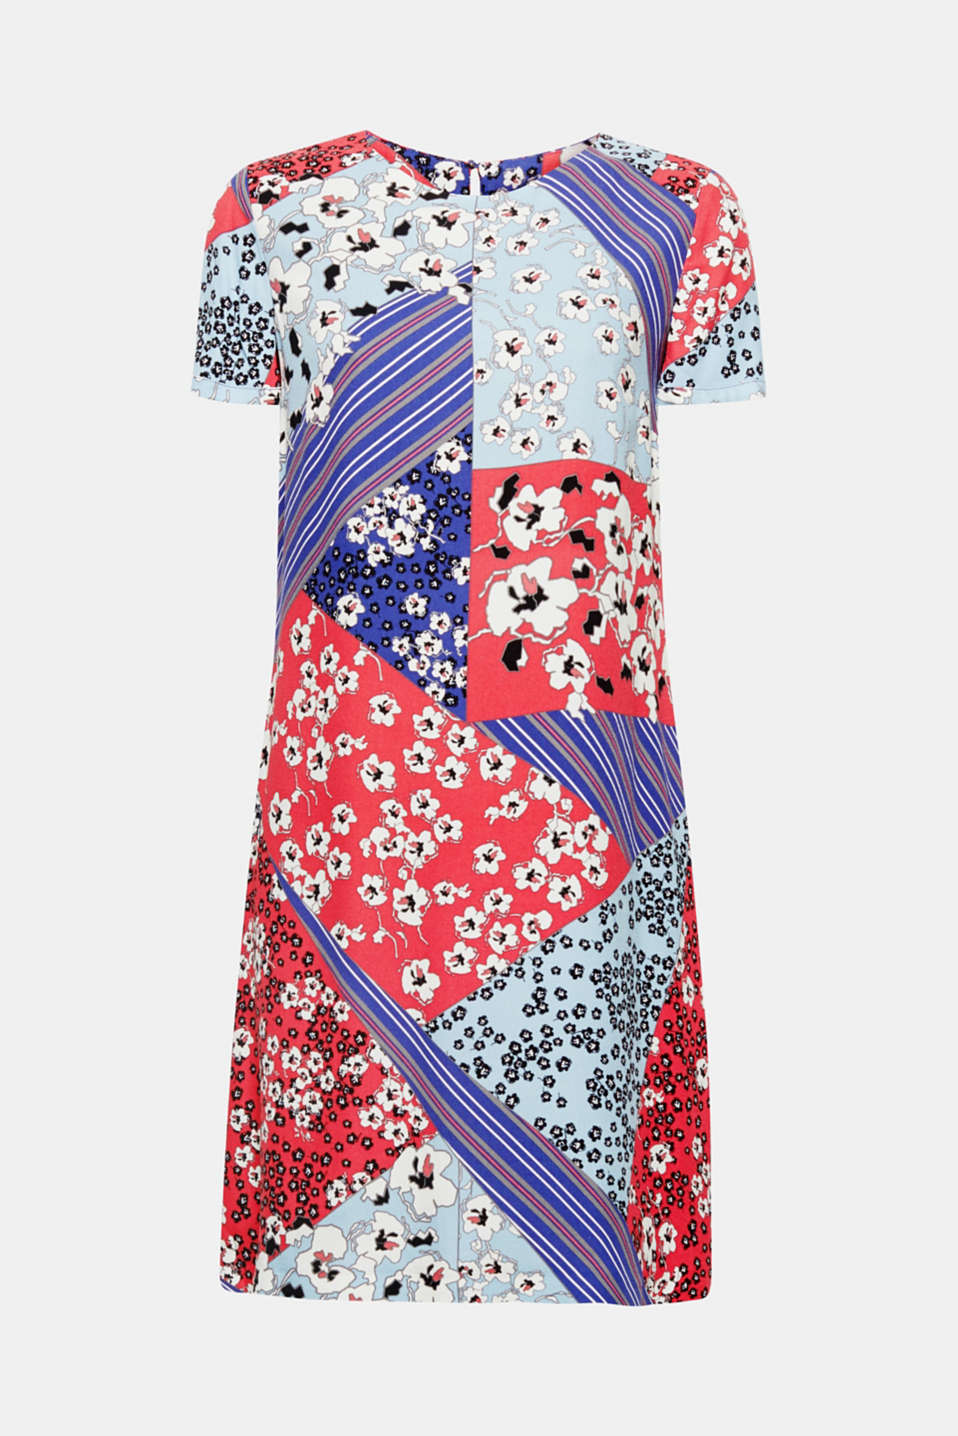 Mix it up! This floaty, loose-cut dress combines flowers and stripes to create a colourful ocean of patterns. Simply put it on and feel fabulous!